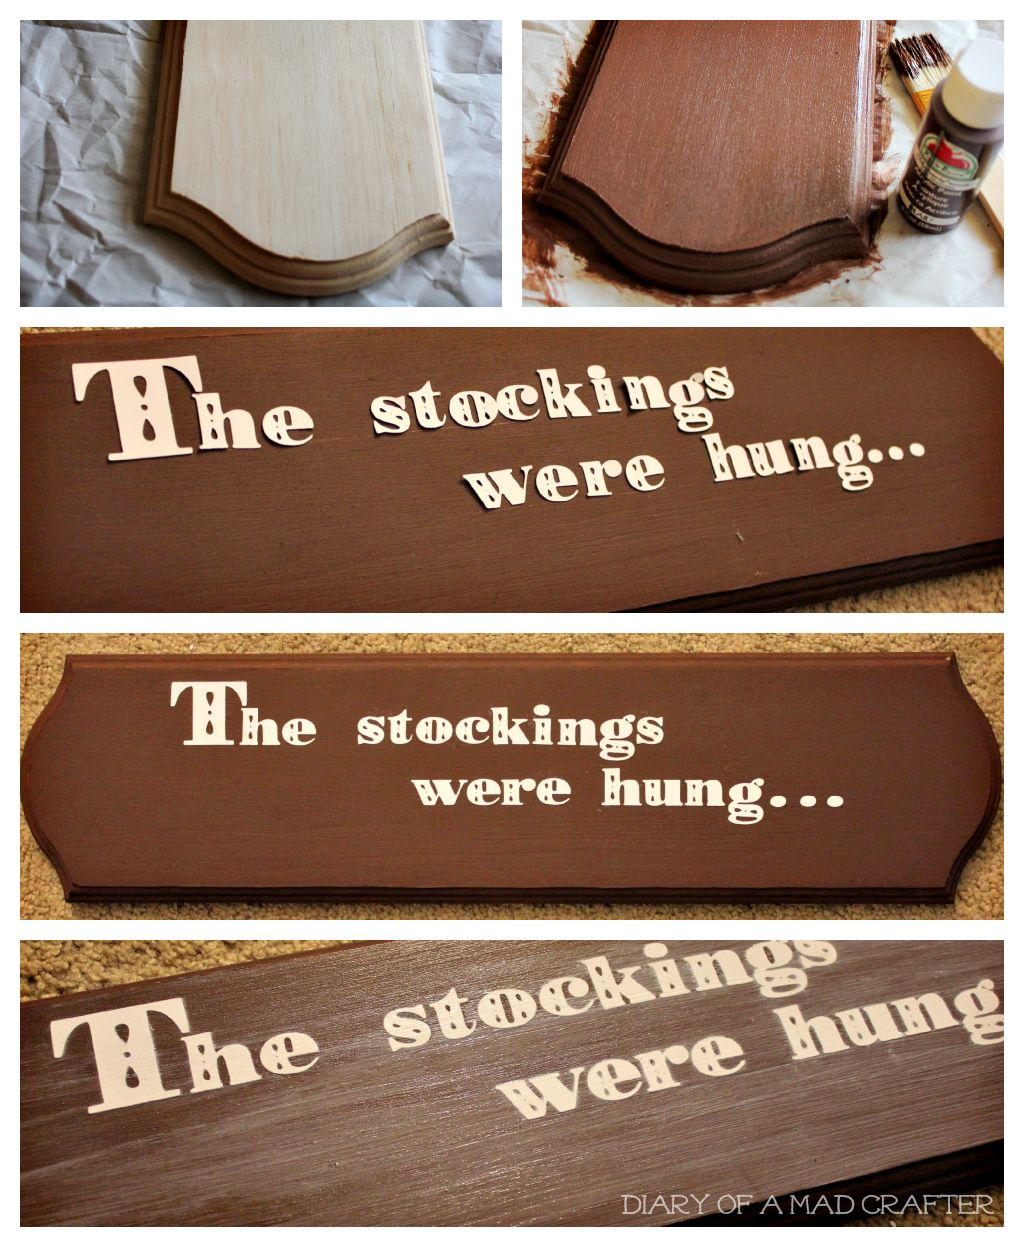 thestockingswerehung